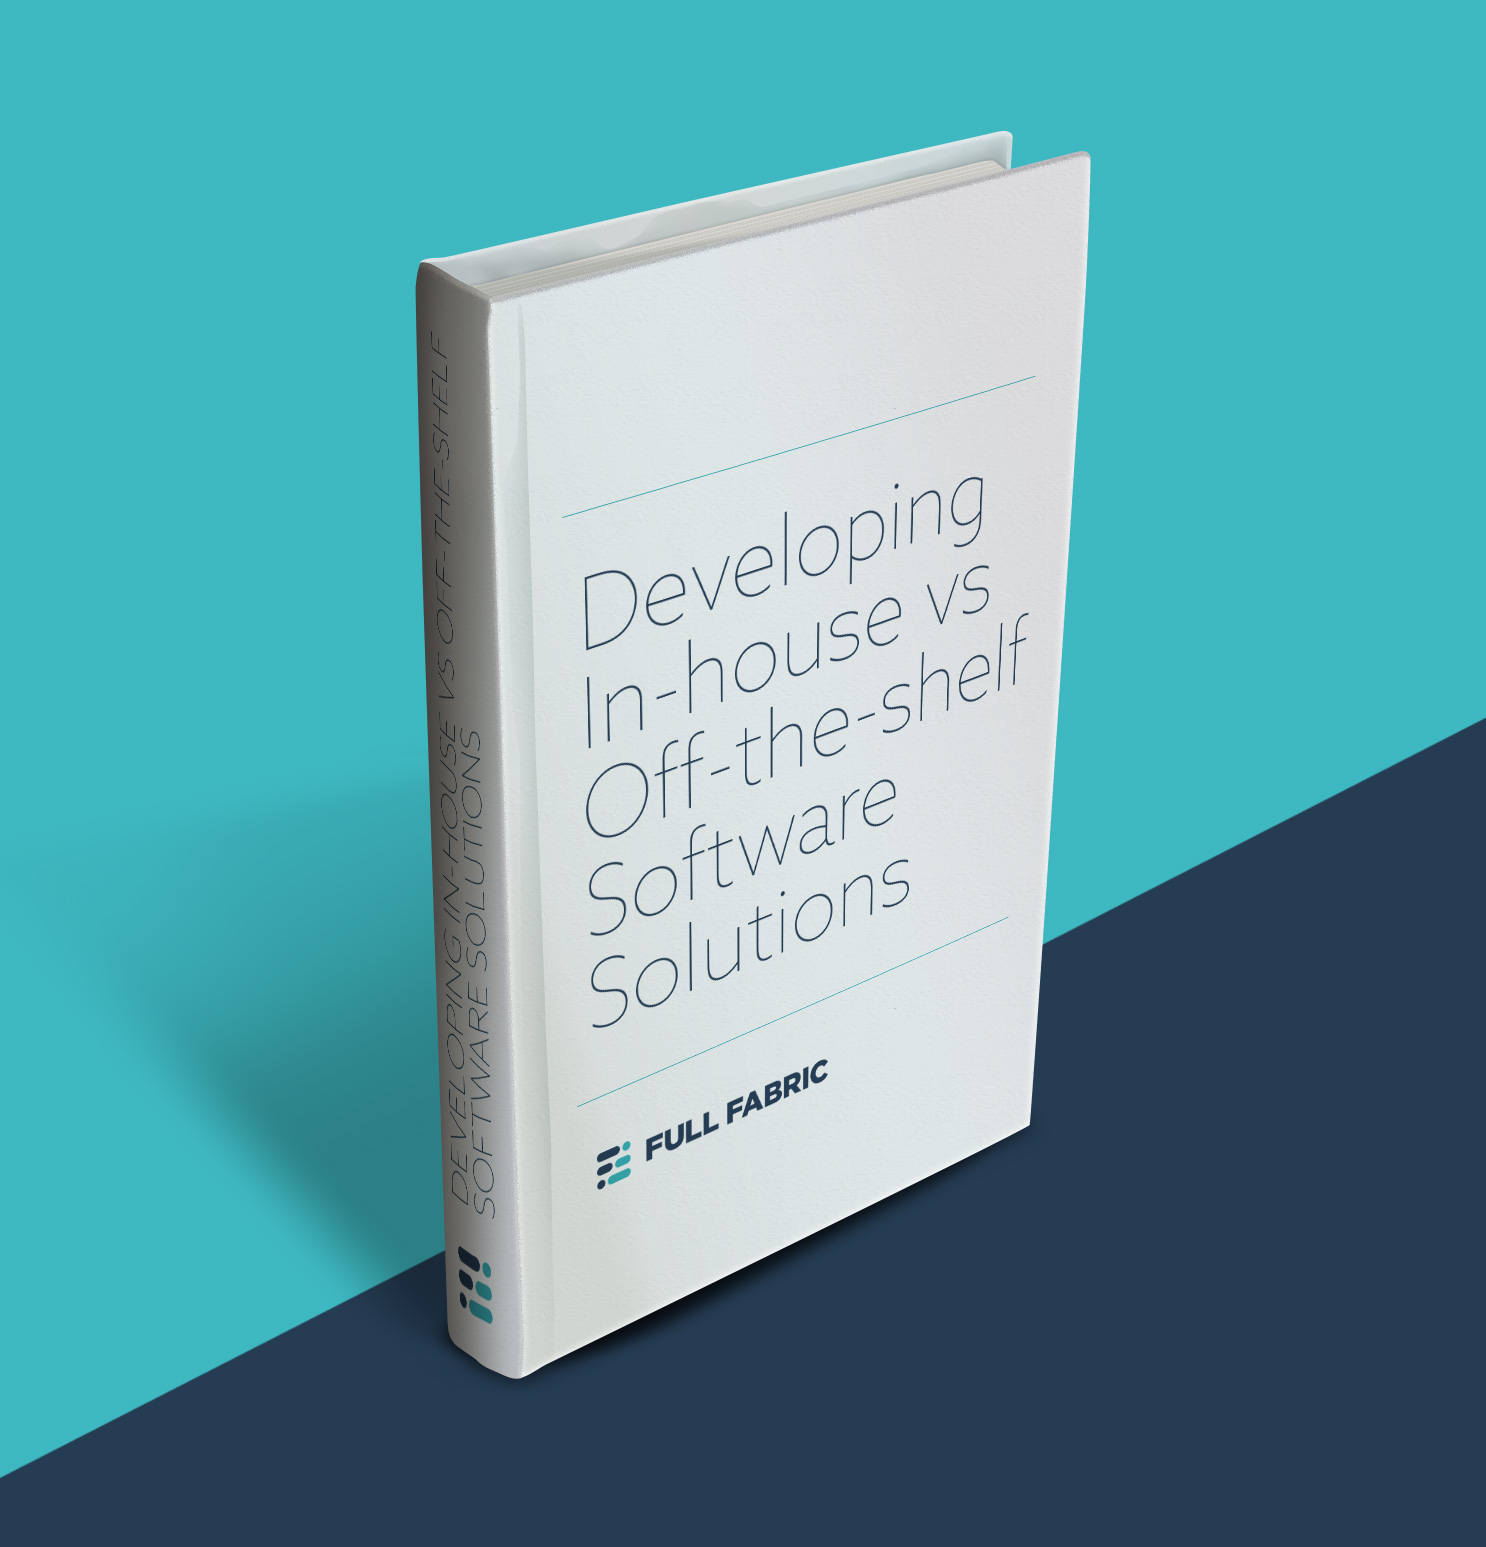 Software for higher education: in-house development vs SaaS